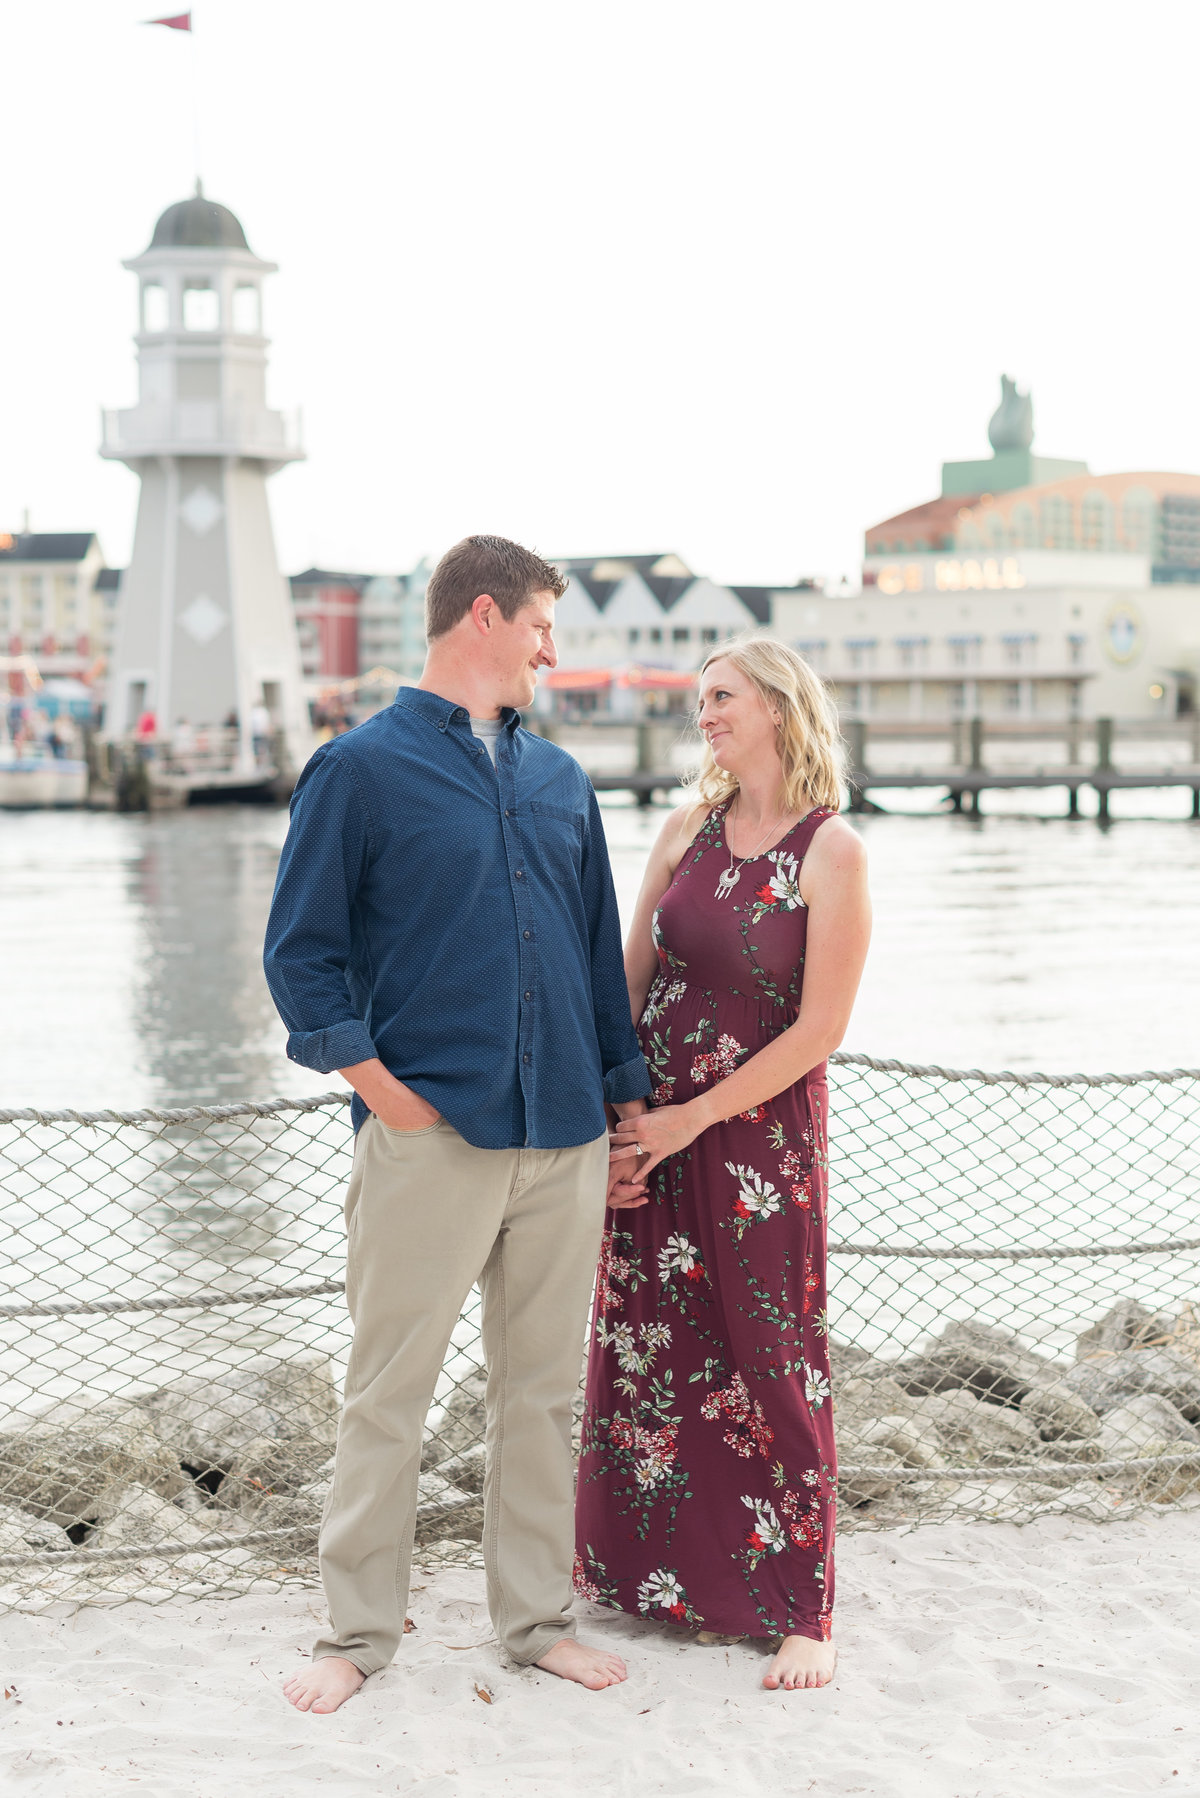 Disney Family Photography, Disney Engagement Photography, Disney Engagement Photographer, Disney Anniversary Photographer